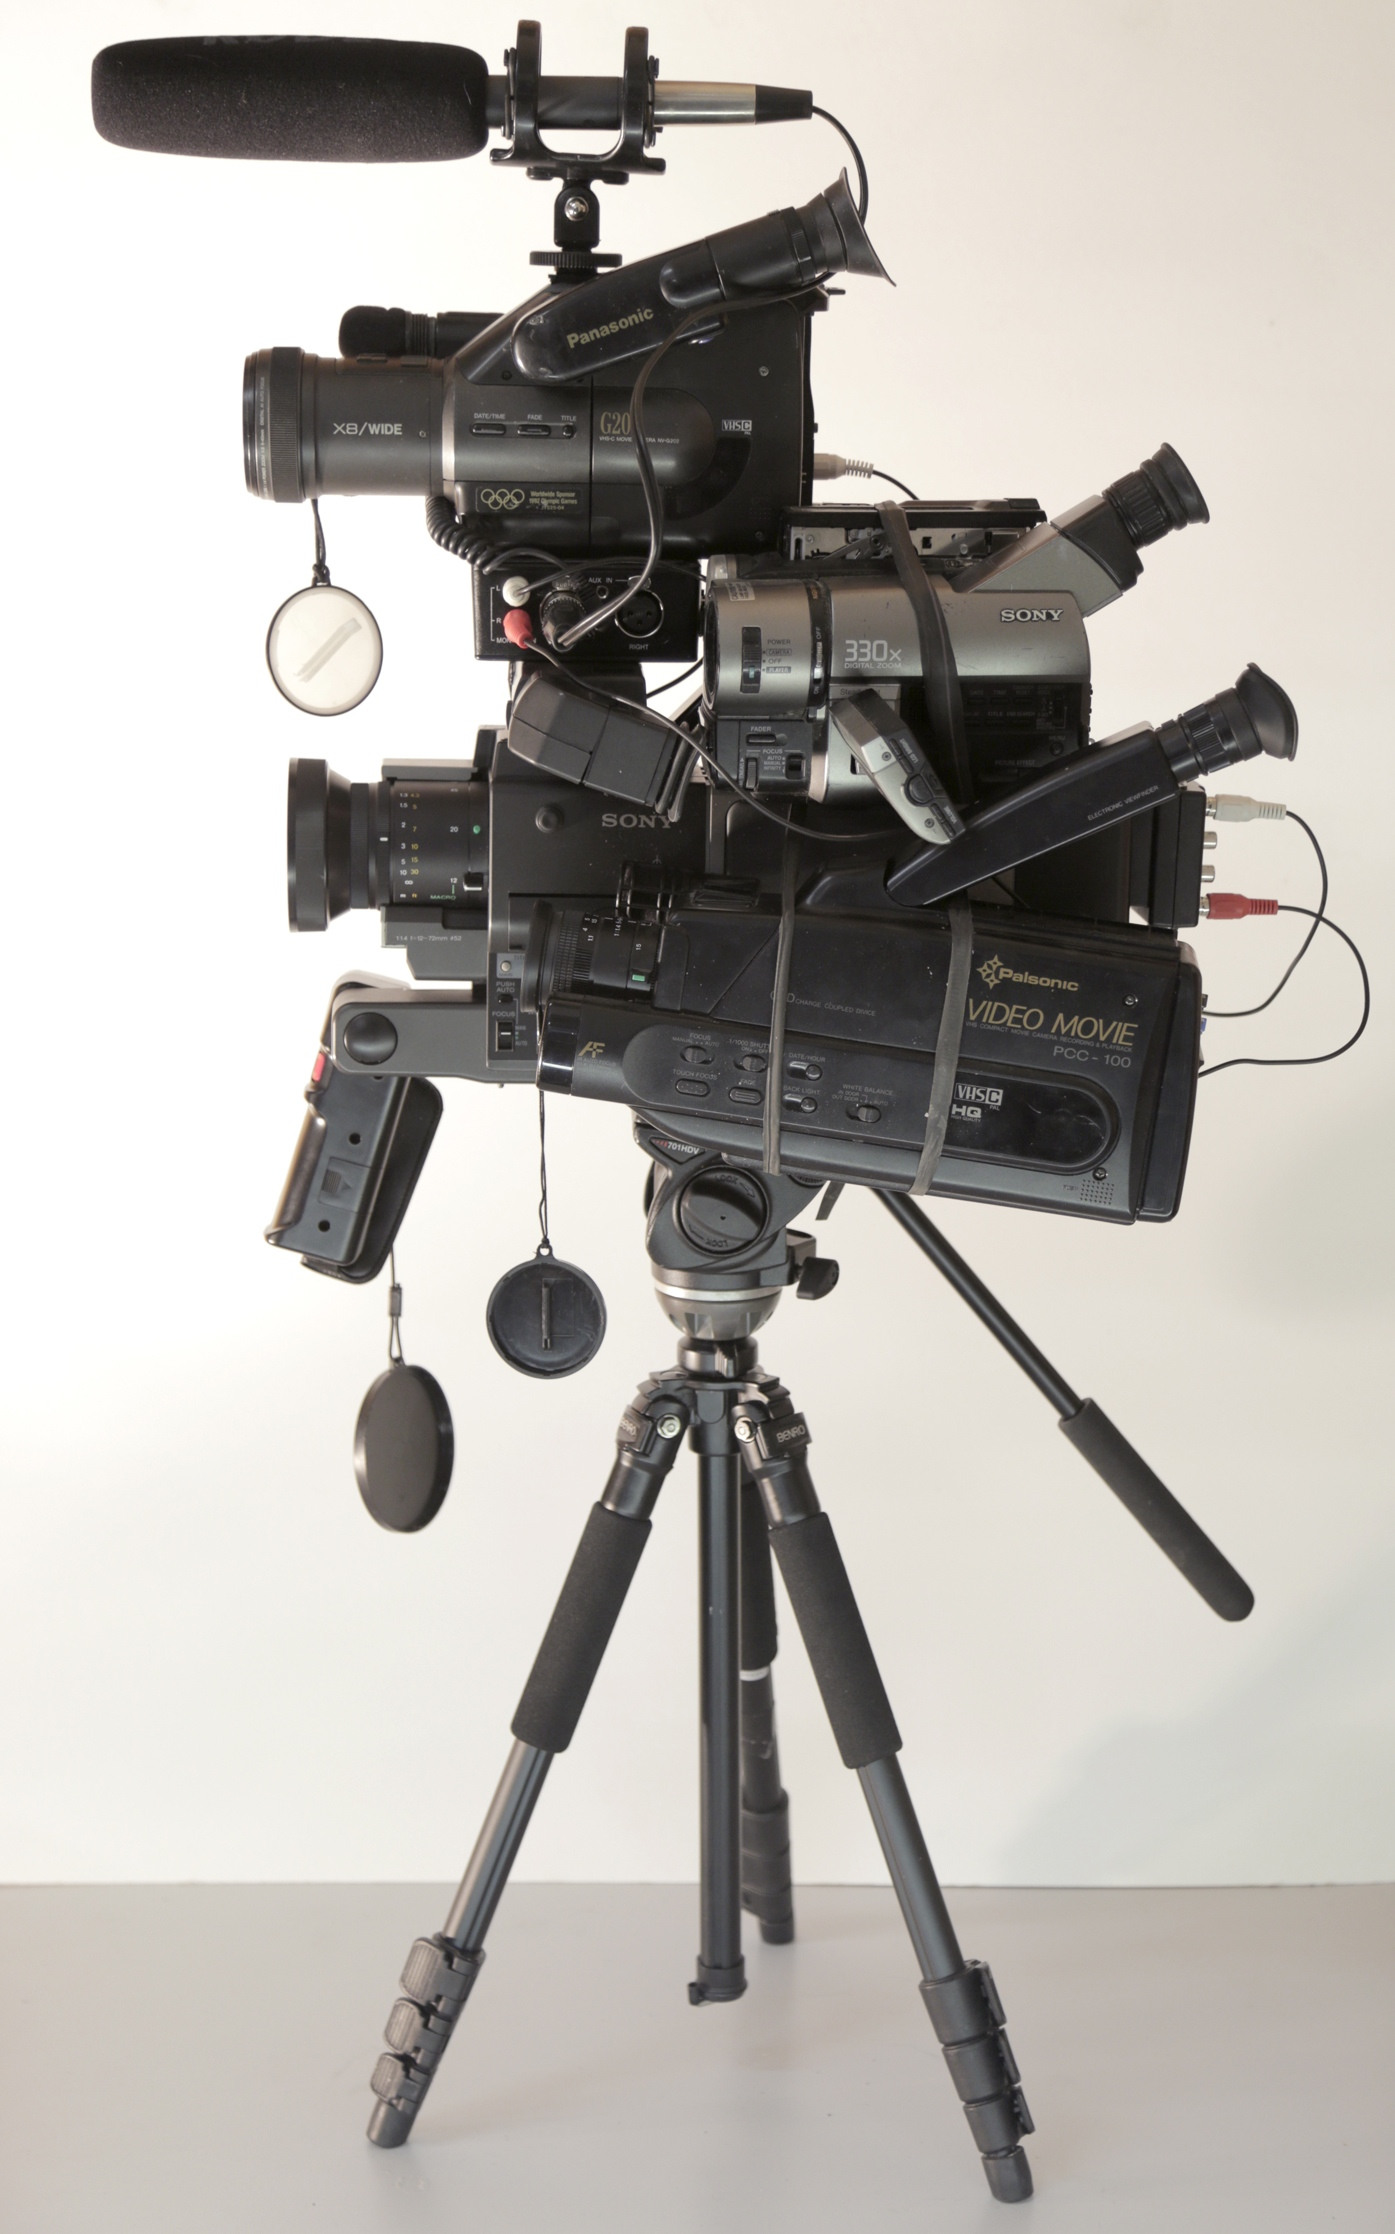 Alex Cuffe, Quadrascopic video camera prototype (2013).jpg